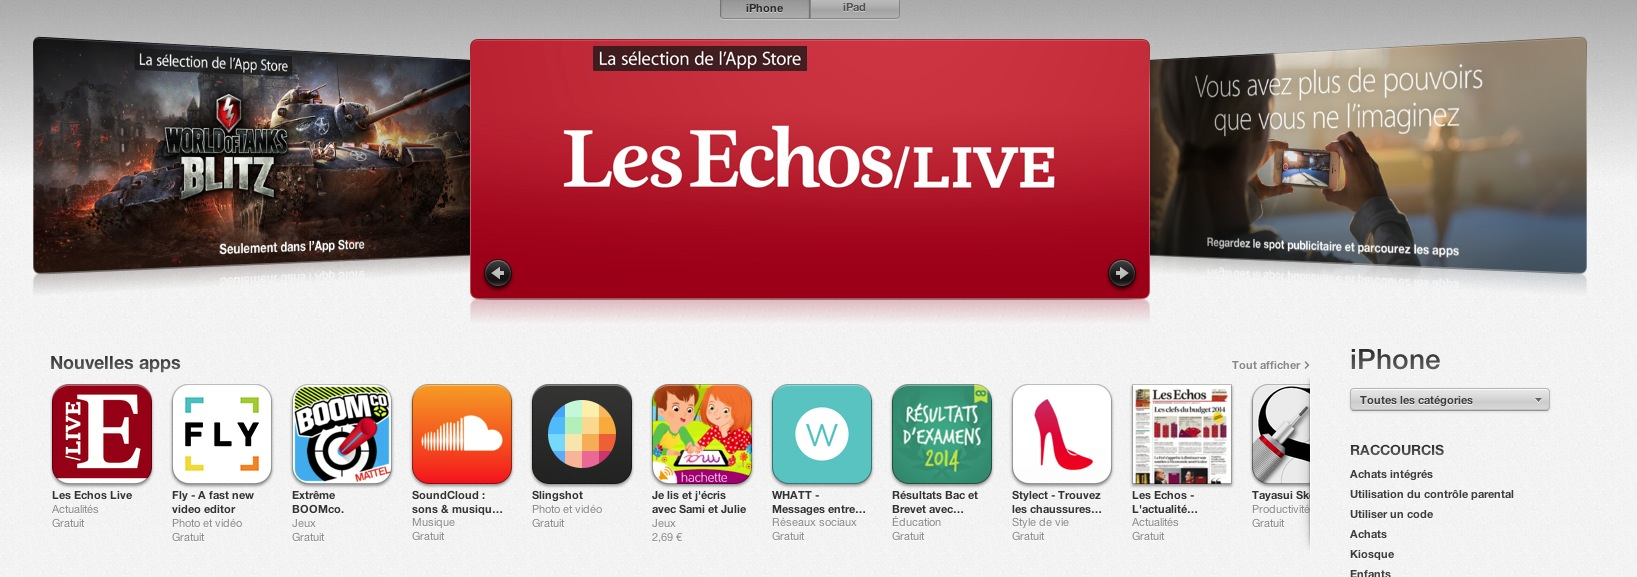 les echos selection applestore